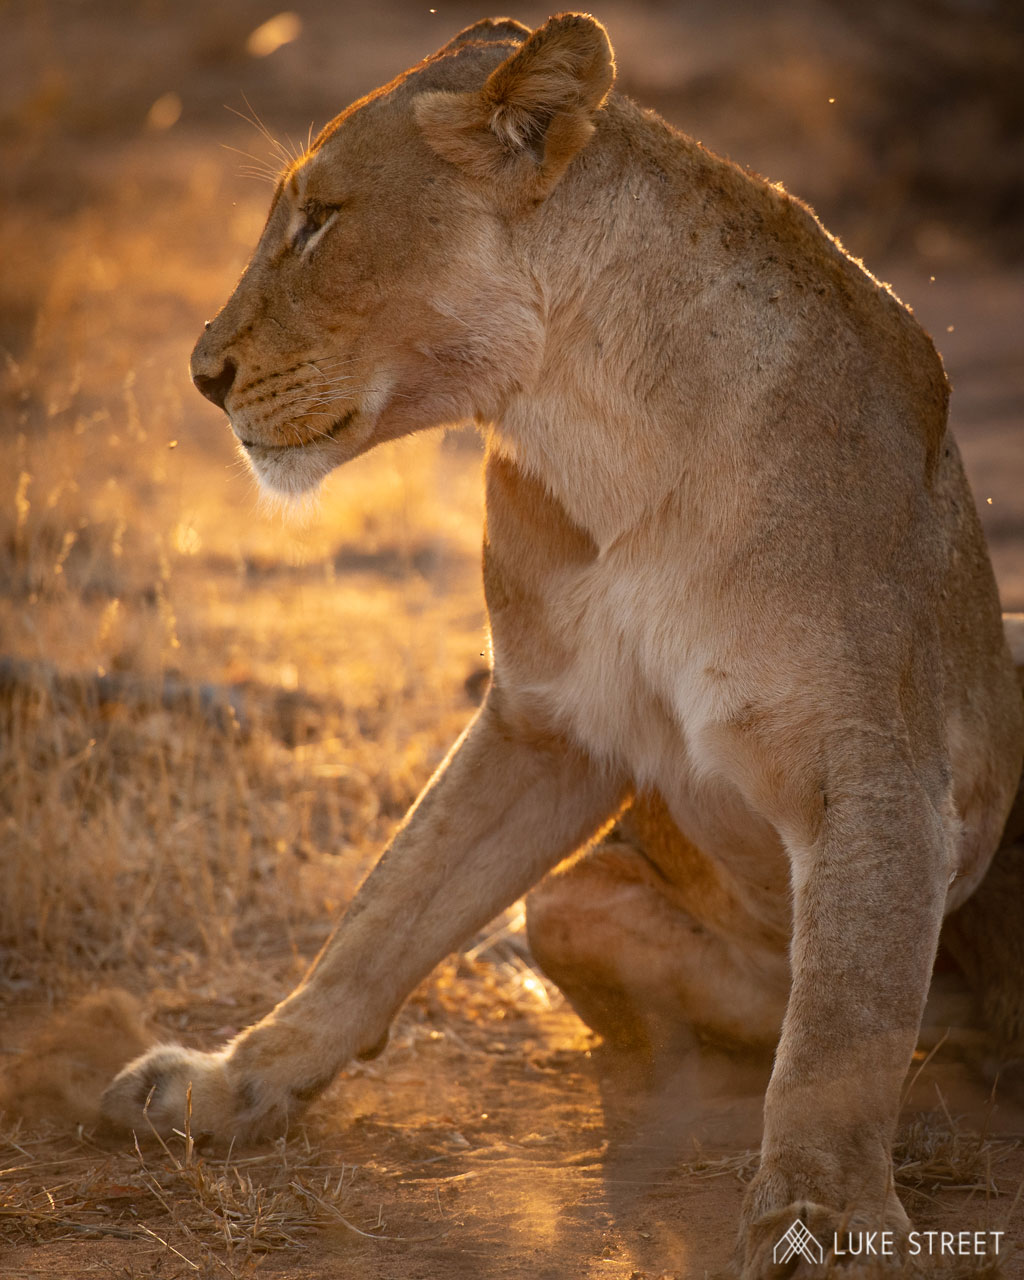 Tanda Tula - Lioness in the Greater Kruger